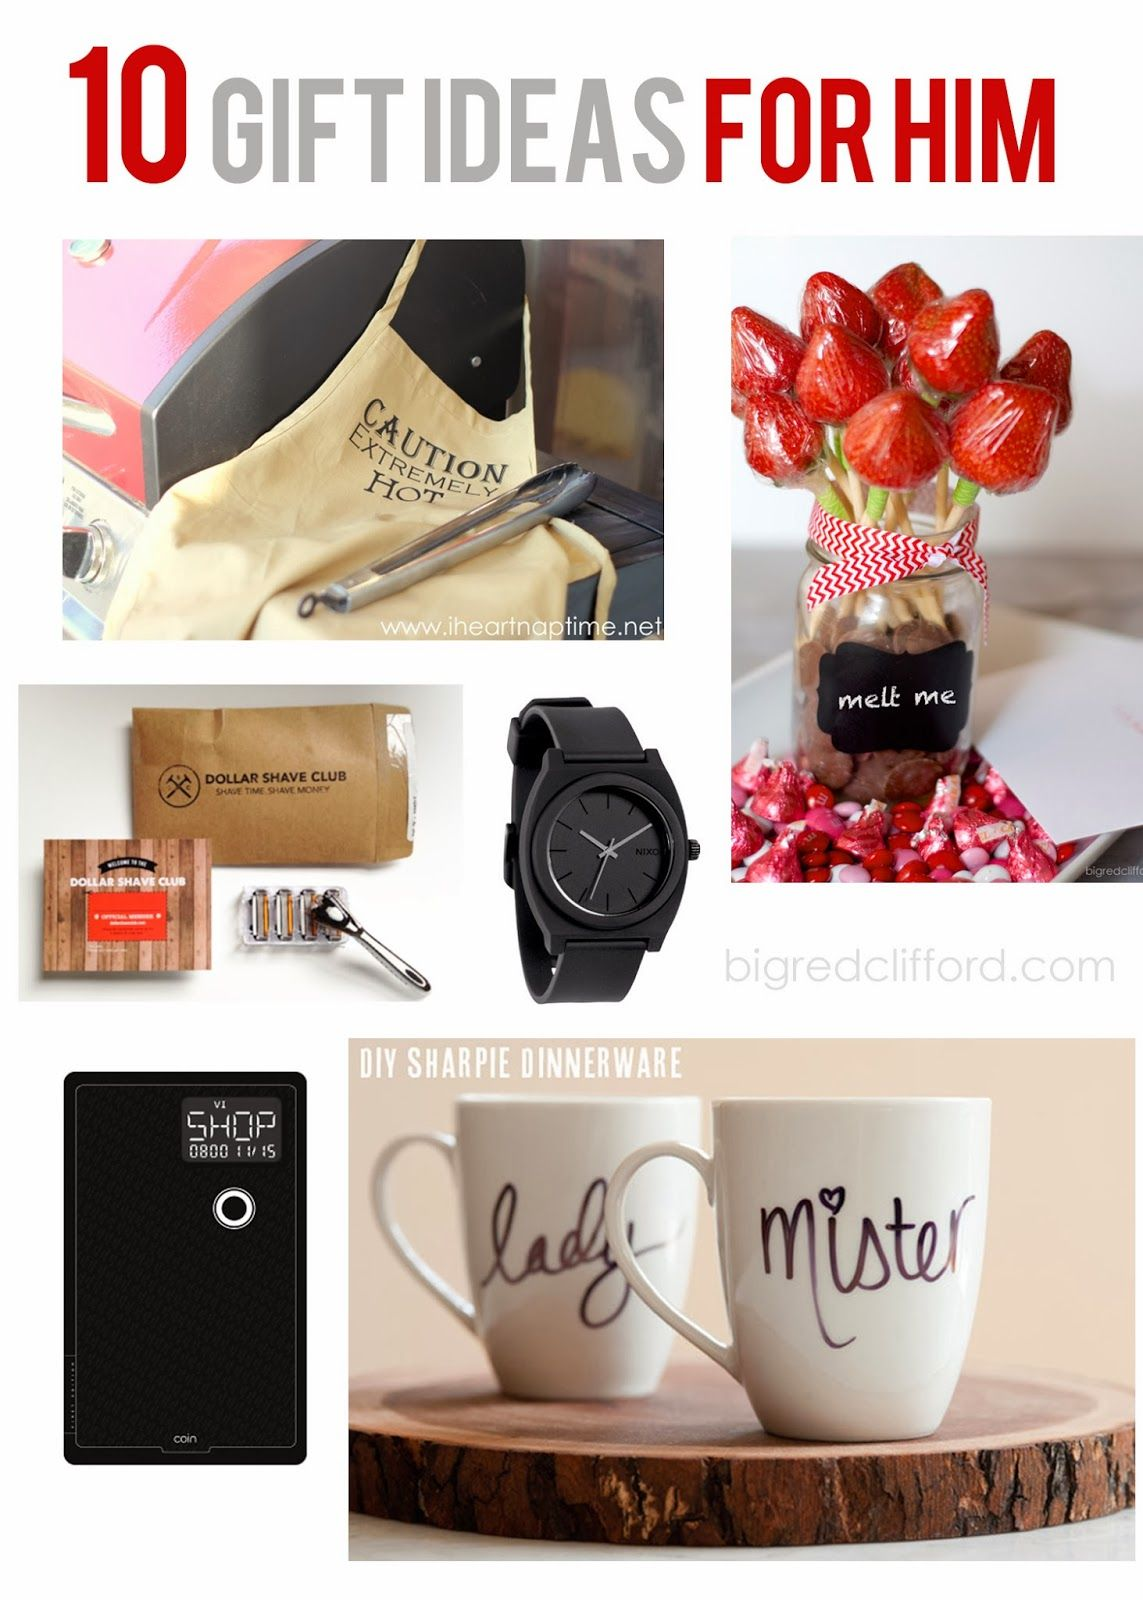 Pin By Lashawn Bornholdt On To Do Pinterest Valentines Gifts